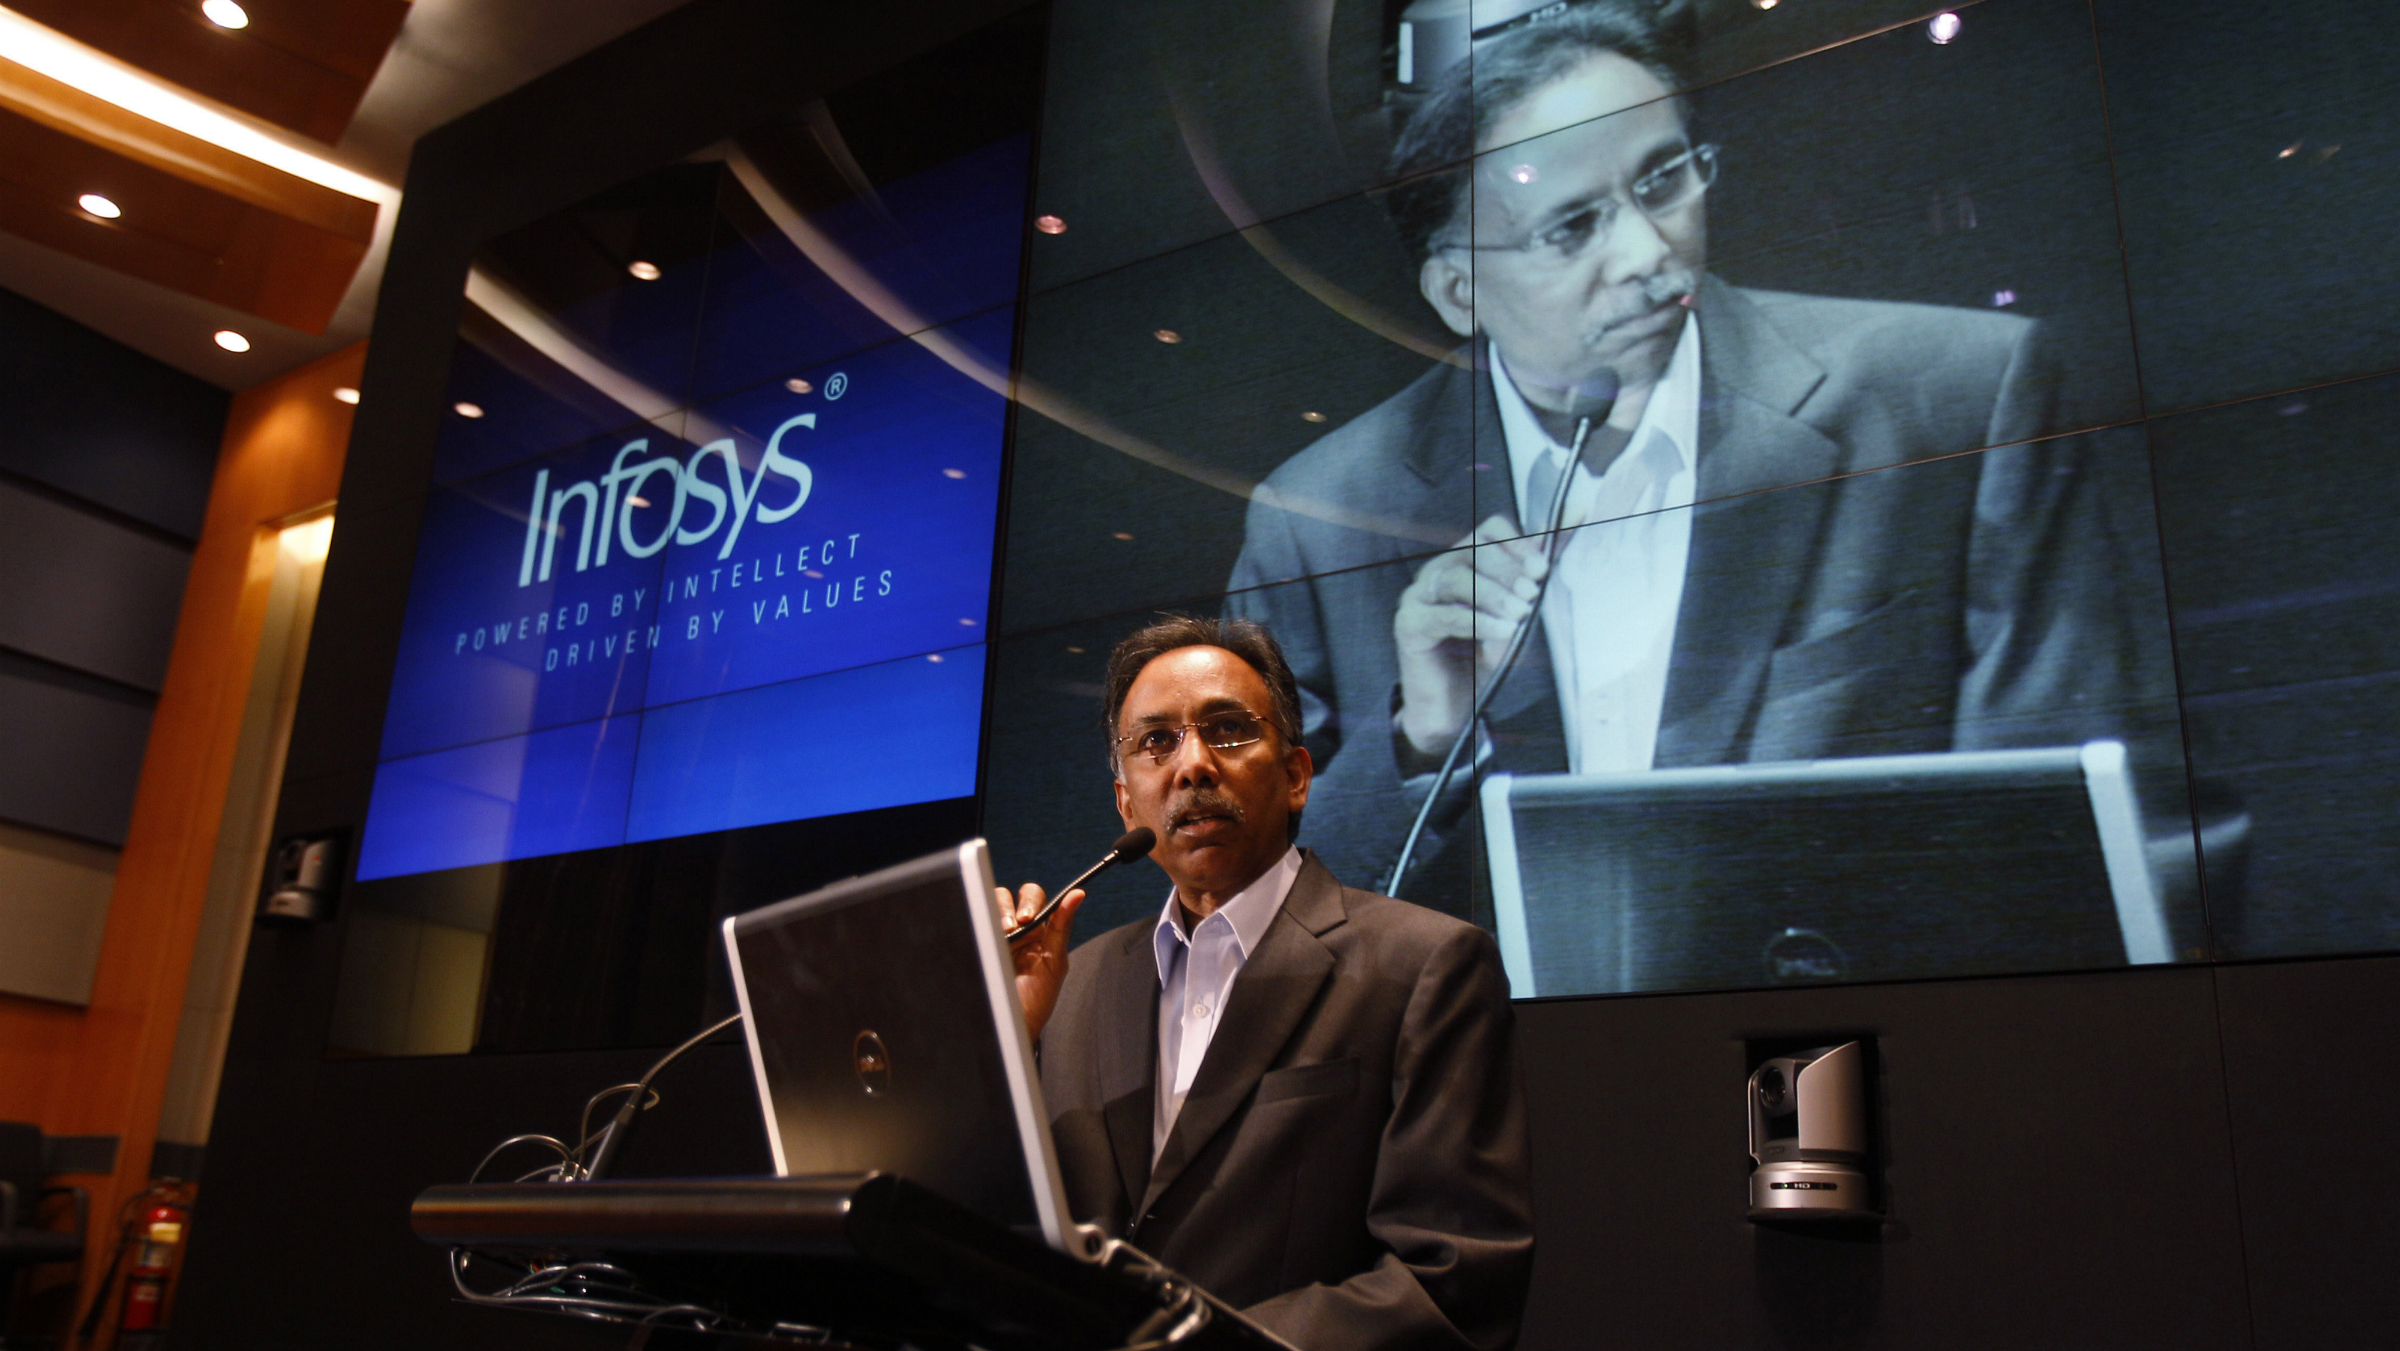 S.D. Shibulal, chief executive at Infosys, has had a rough day.